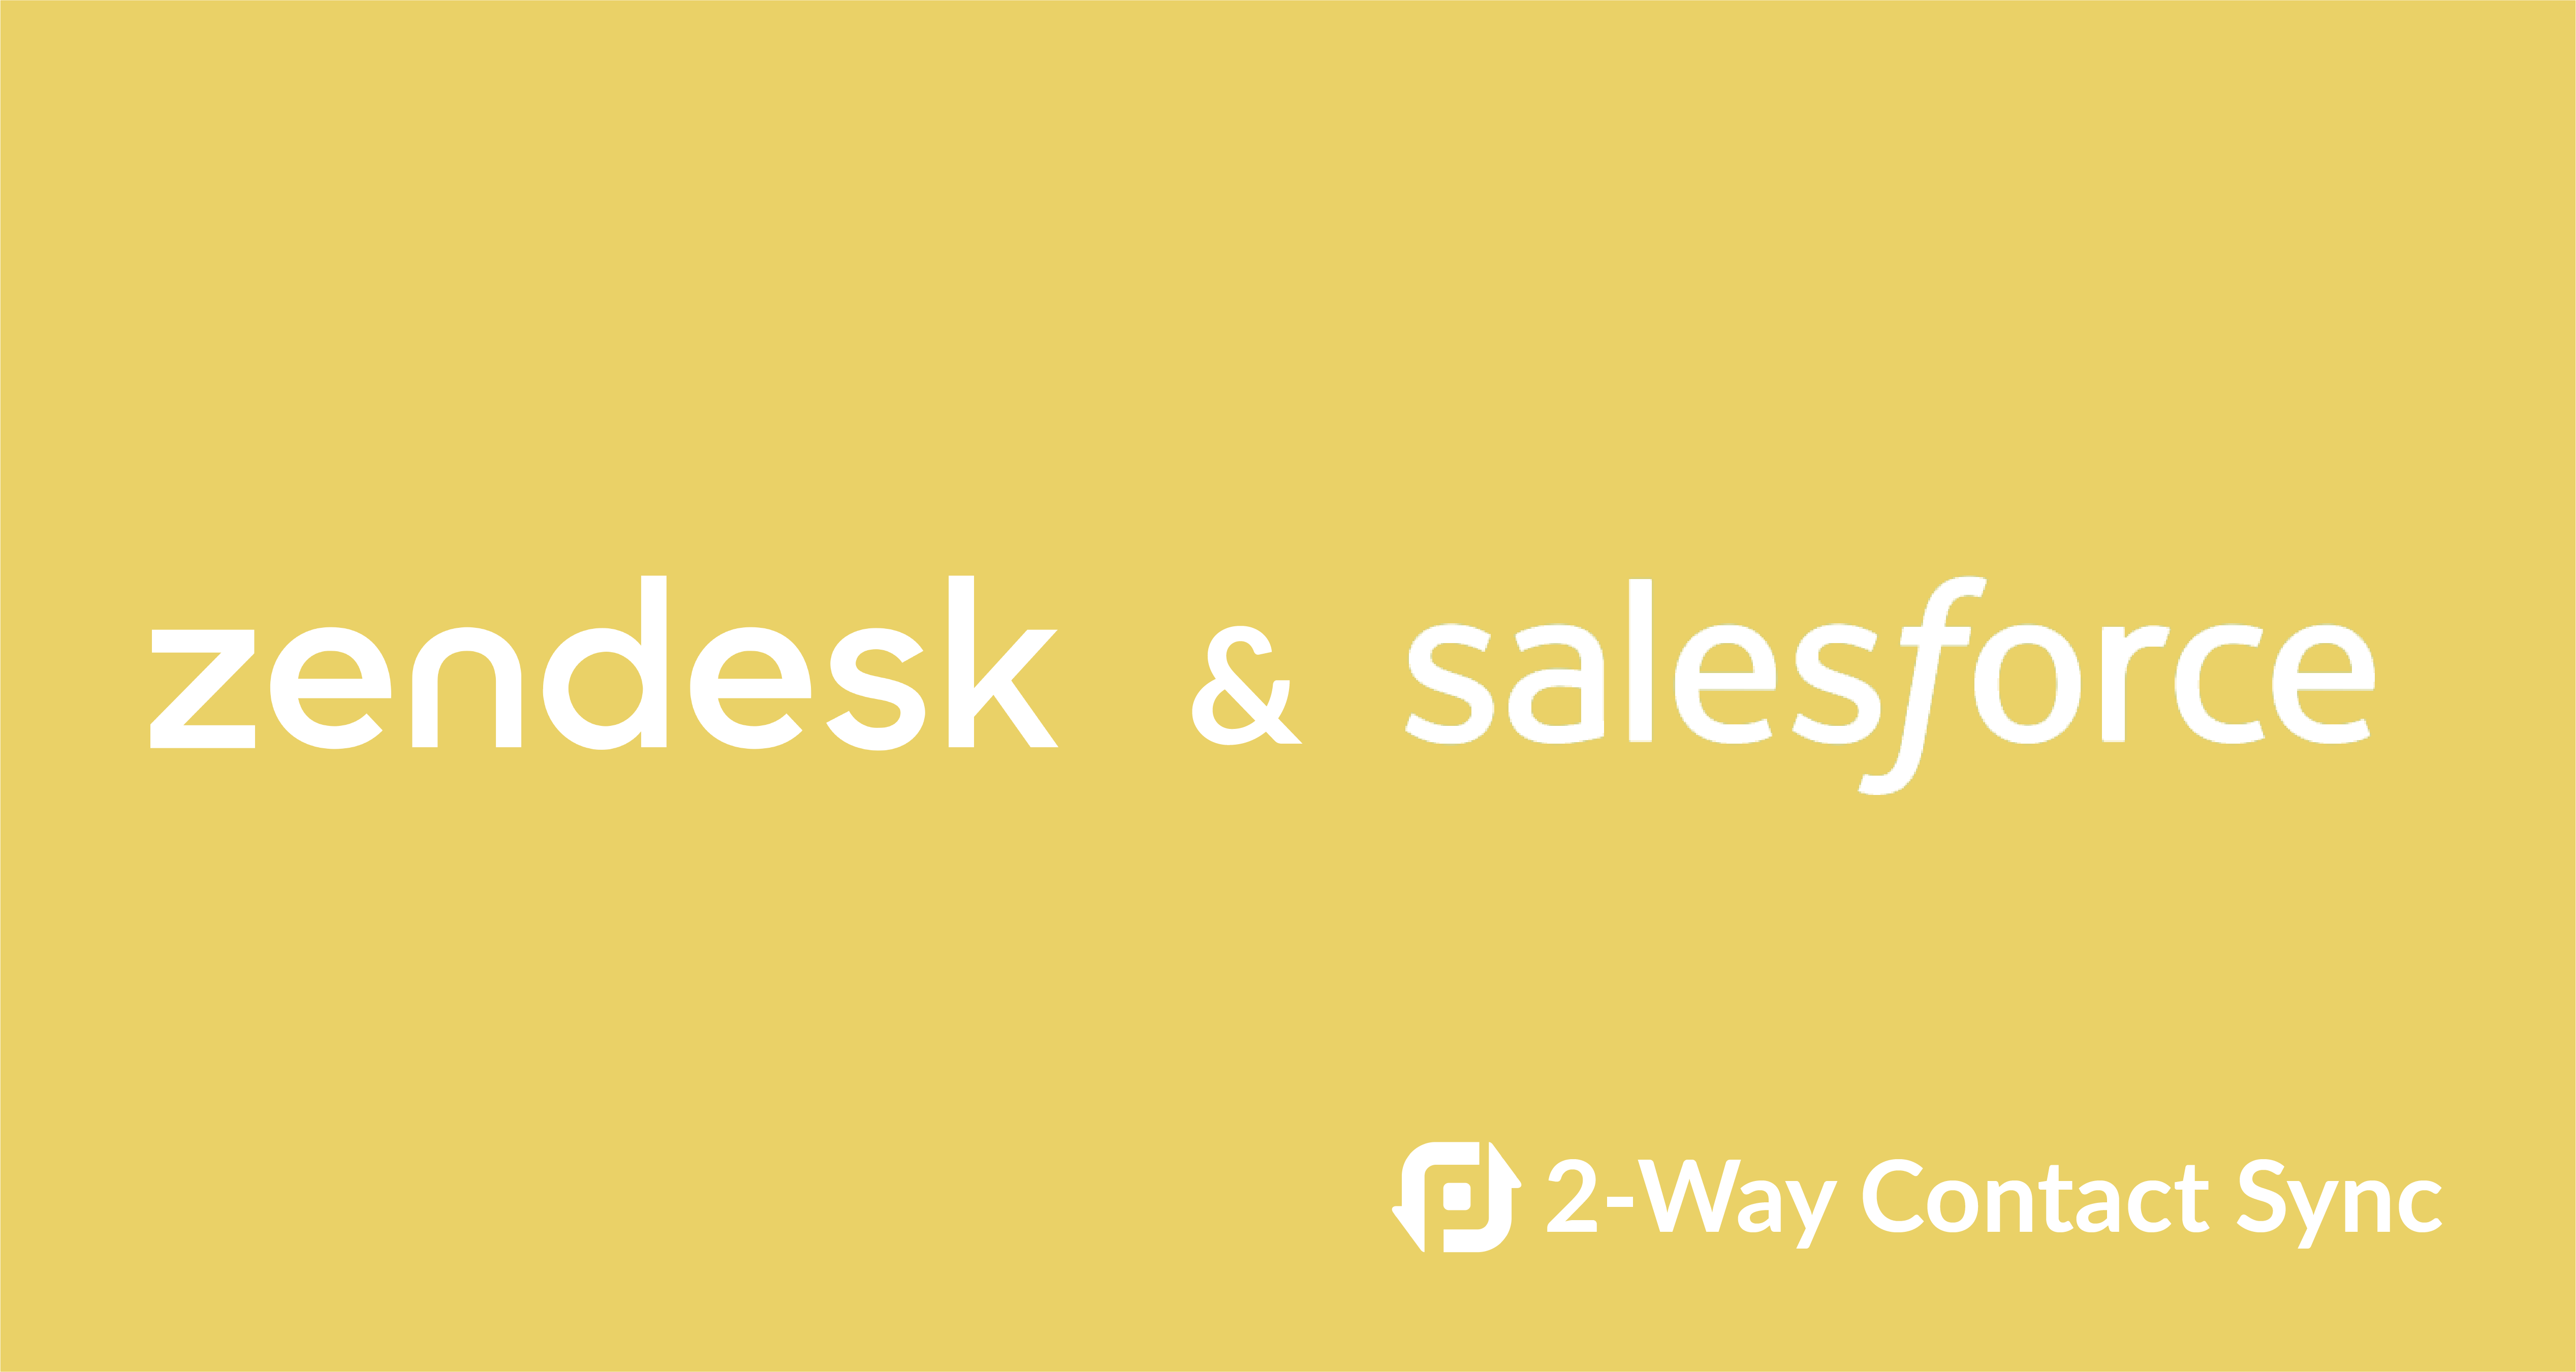 Sync contacts between Salesforce and Zendesk - PieSync